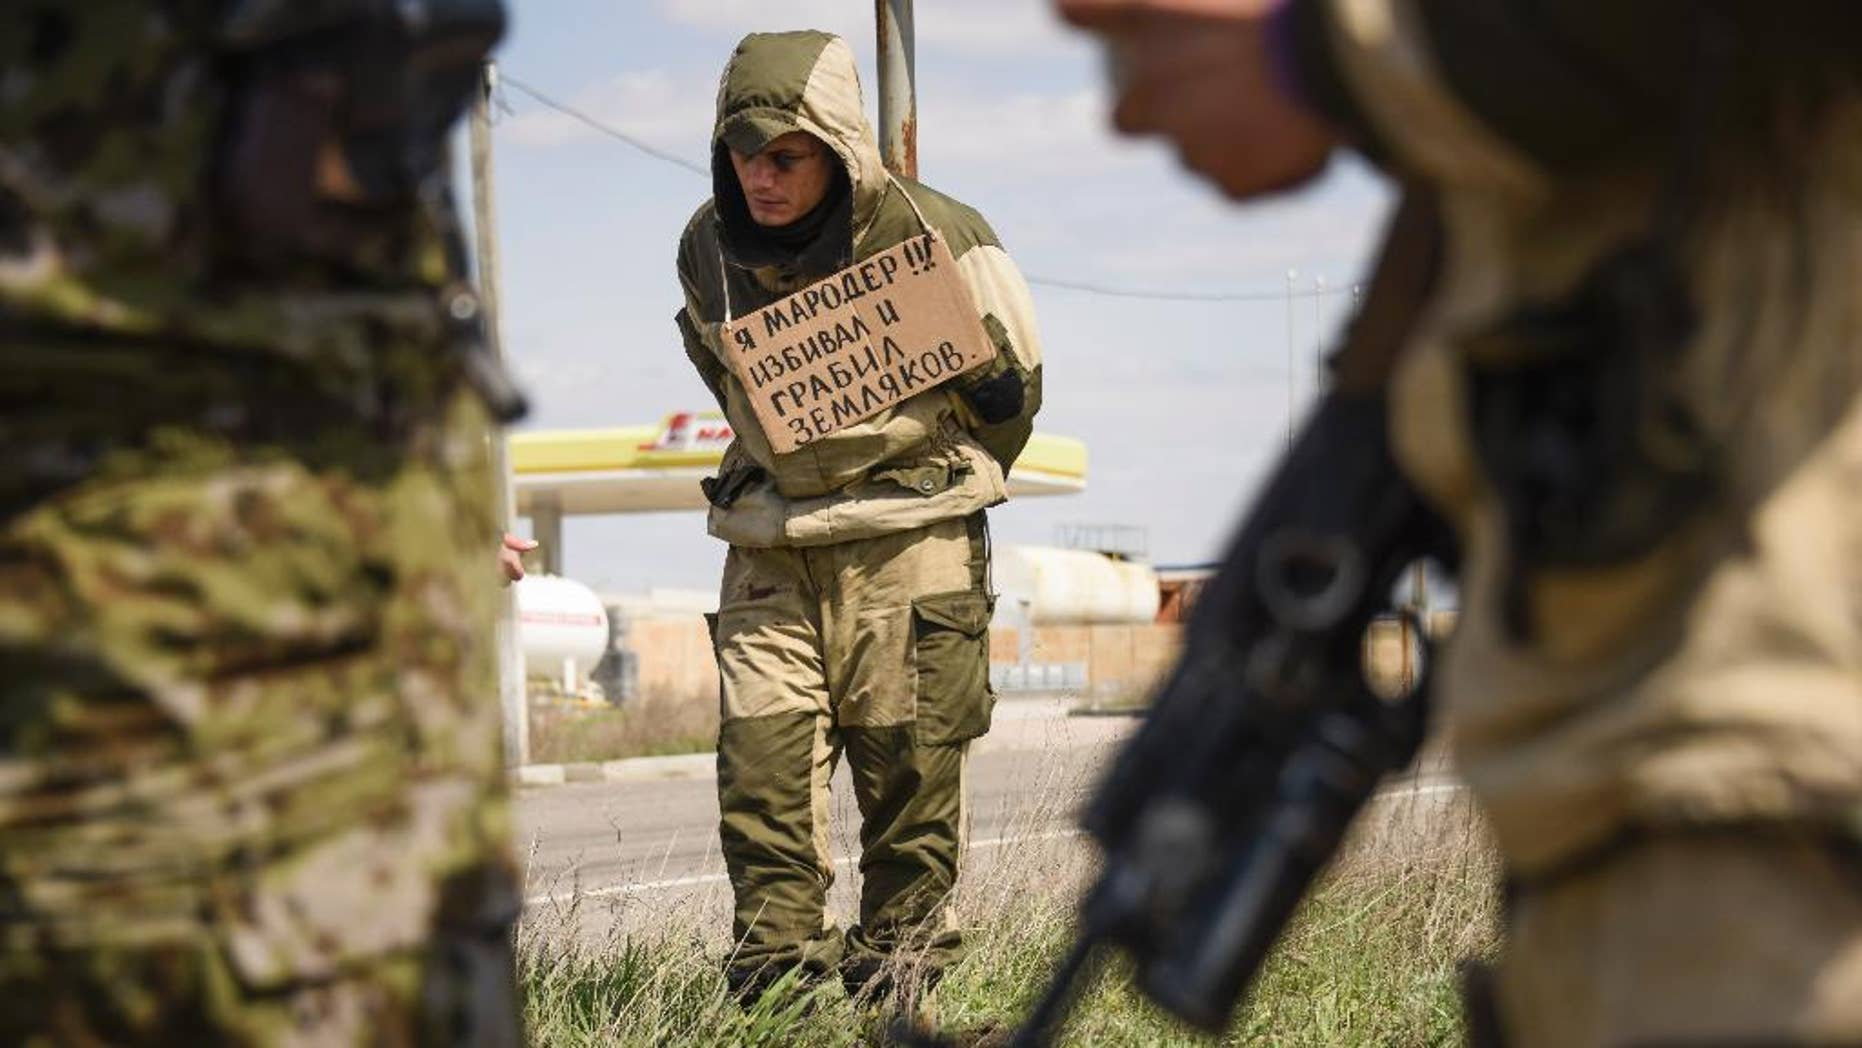 """A man stands tied to a post by pro-Russian rebels, accused of stealing from local people, with a poster around his neck reading  """"I am marauder, I beat and steal from civilians"""",  standing next to a highway in Krasnyi Partyzan, Ukraine, Thursday, April 23, 2015. (AP Photo/Mstyslav Chernov)"""